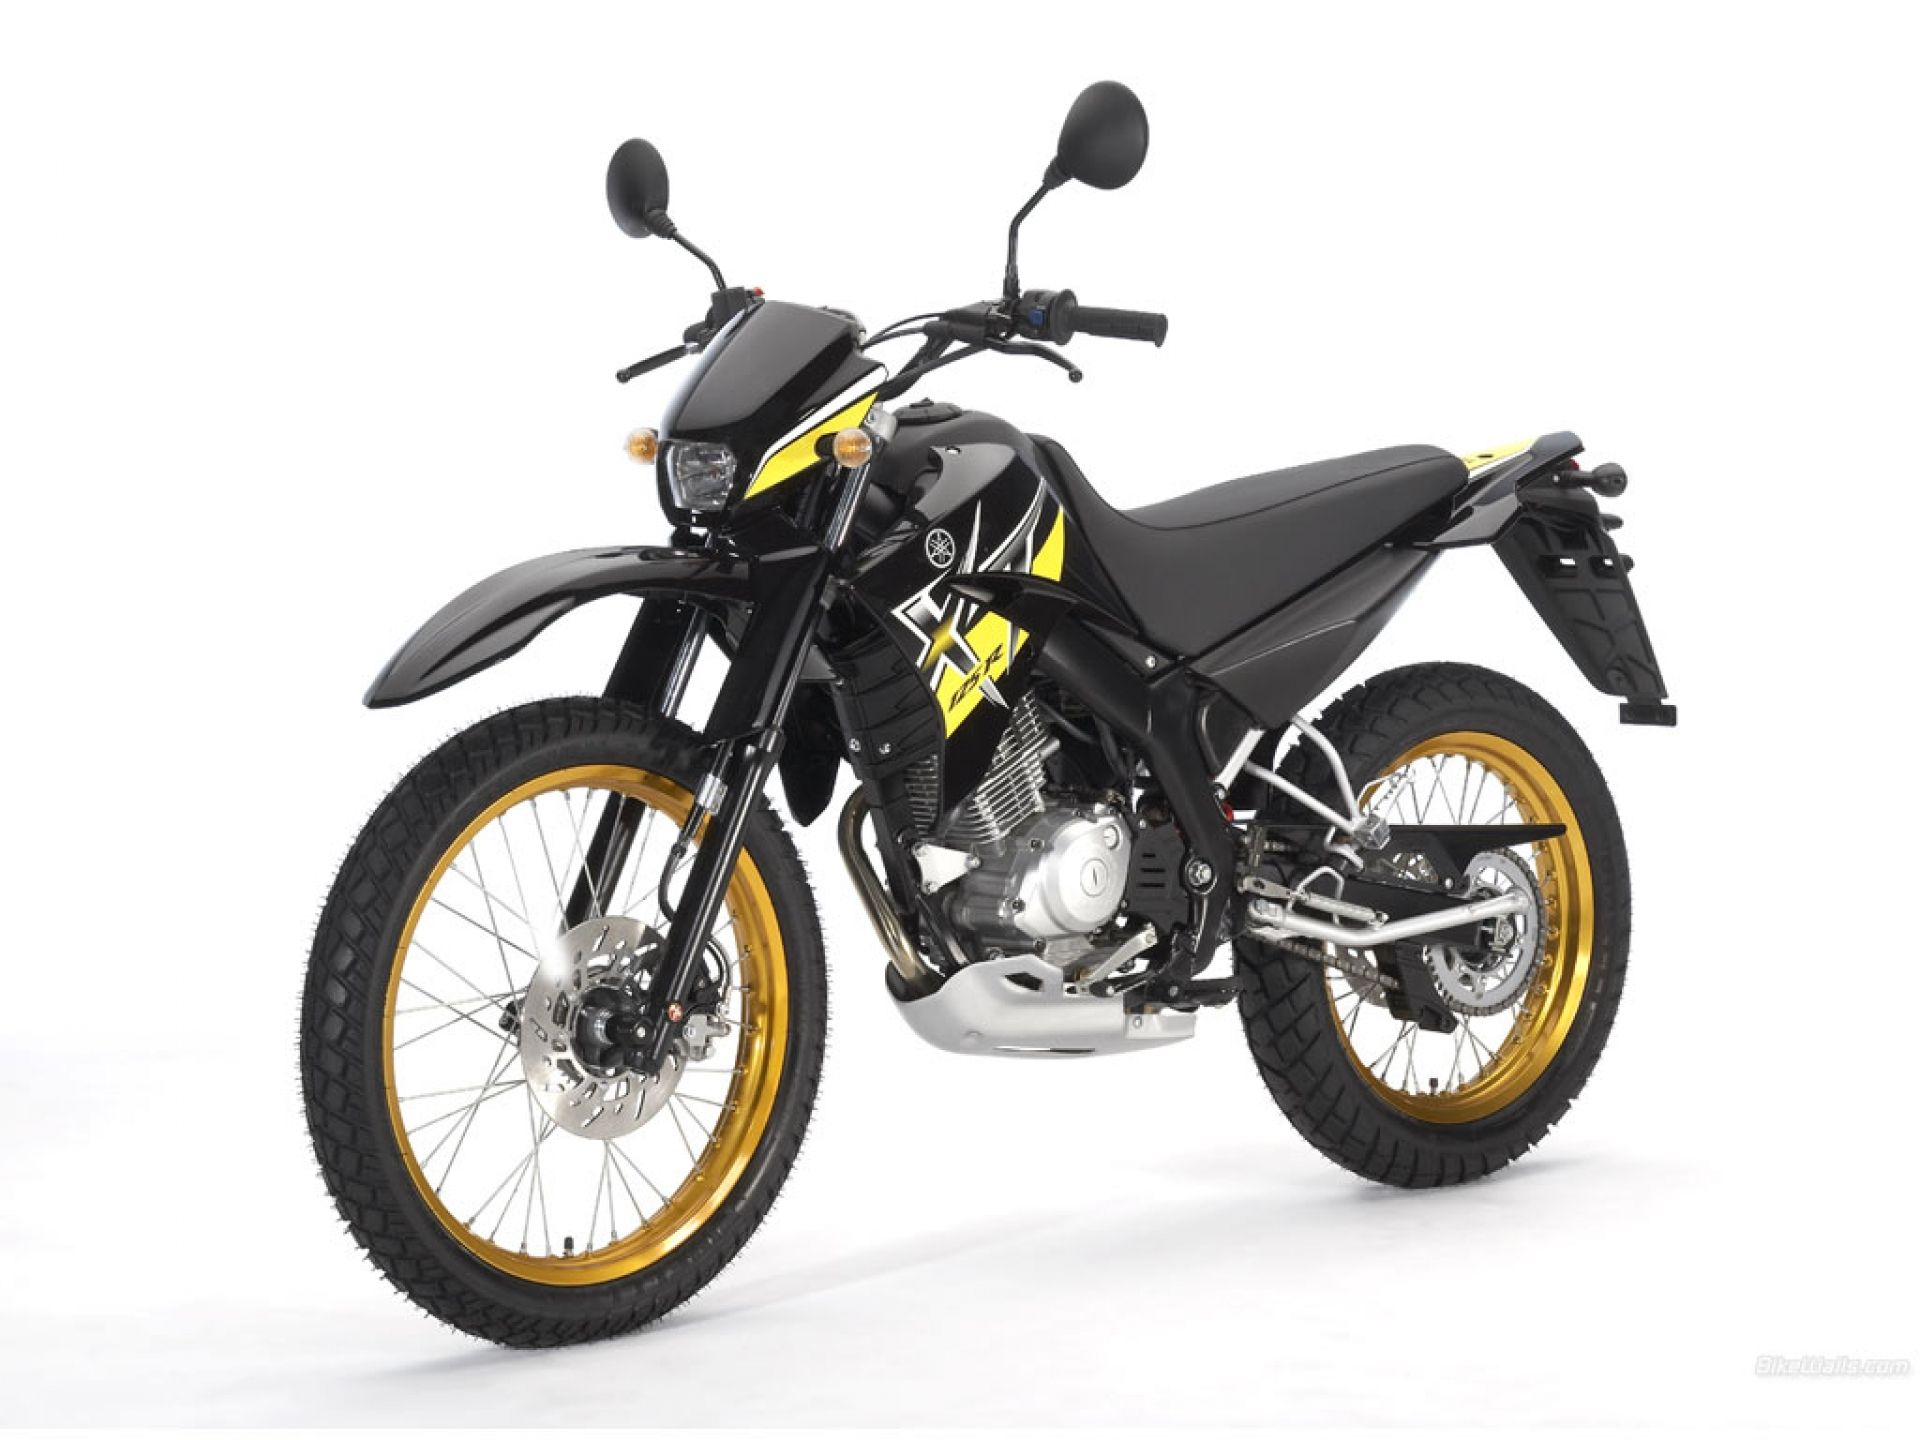 terra mostro dual sport | motorcycle | pinterest | dual sport